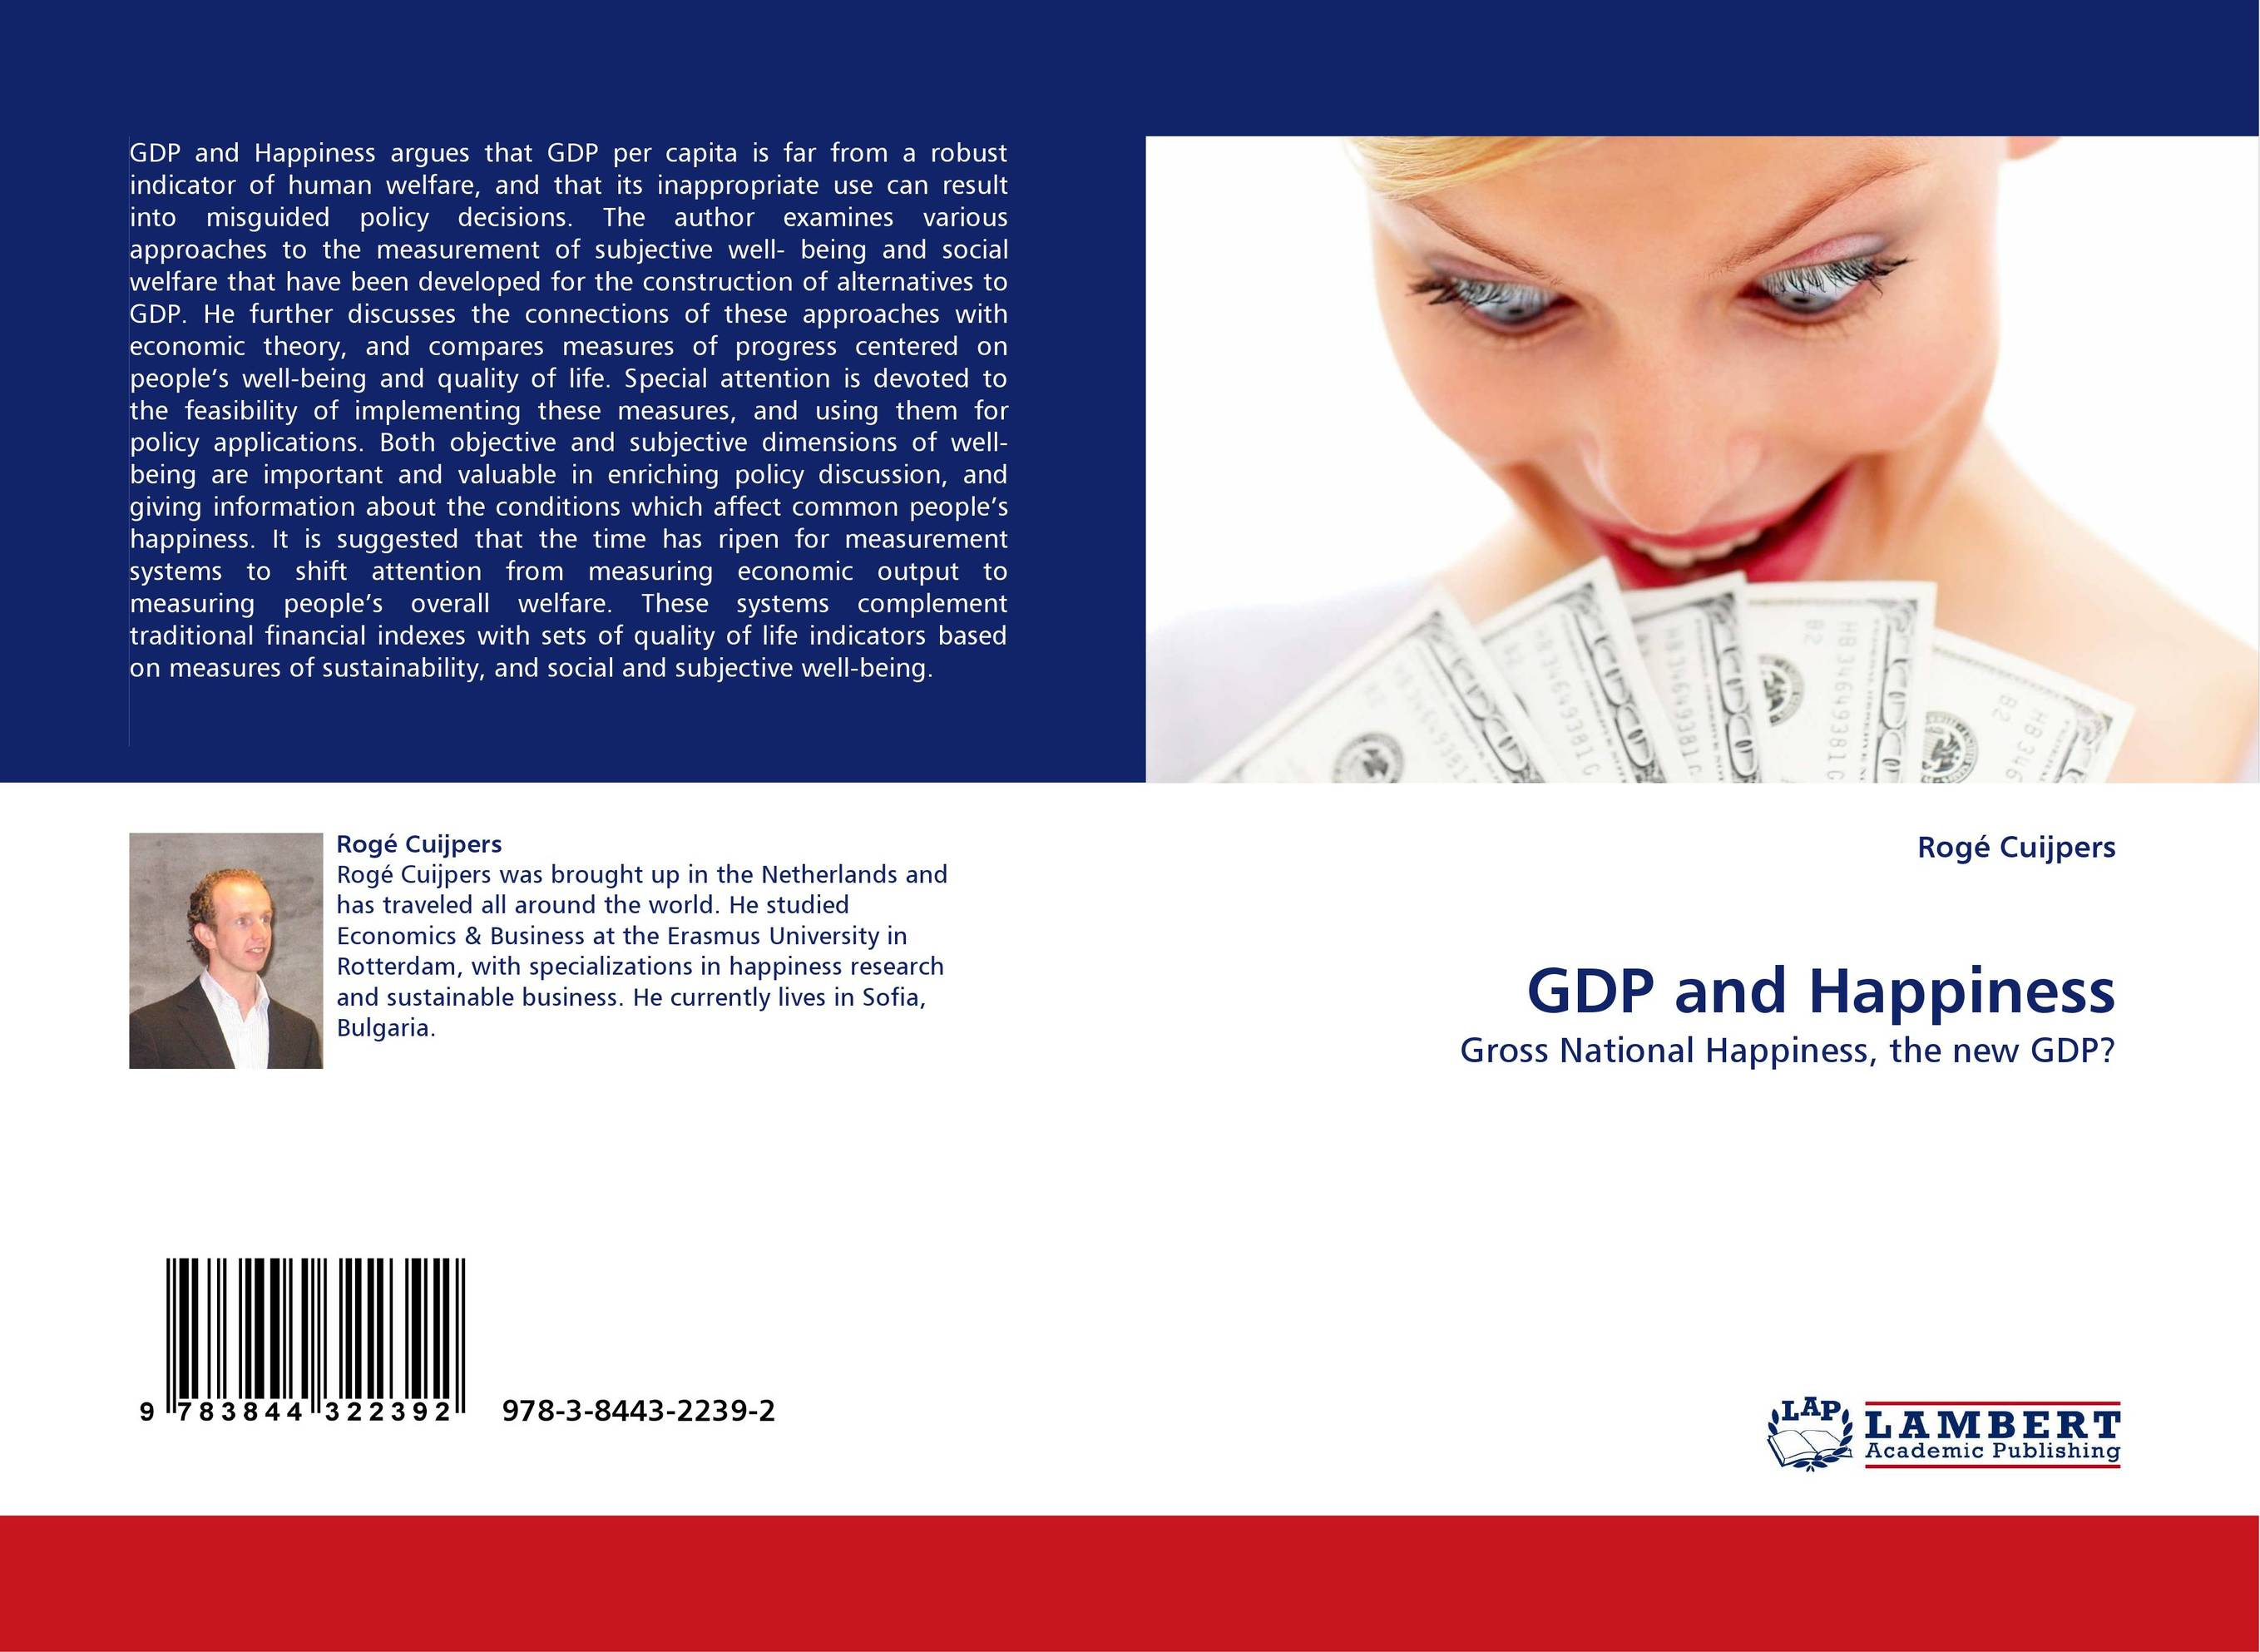 gross national happiness and development an essay Gross national happiness and development: an essay in k ura & k galay (eds), gross national happiness and development: proceedings of the first international seminar on operationalizing gross national happiness (pp 483-495.